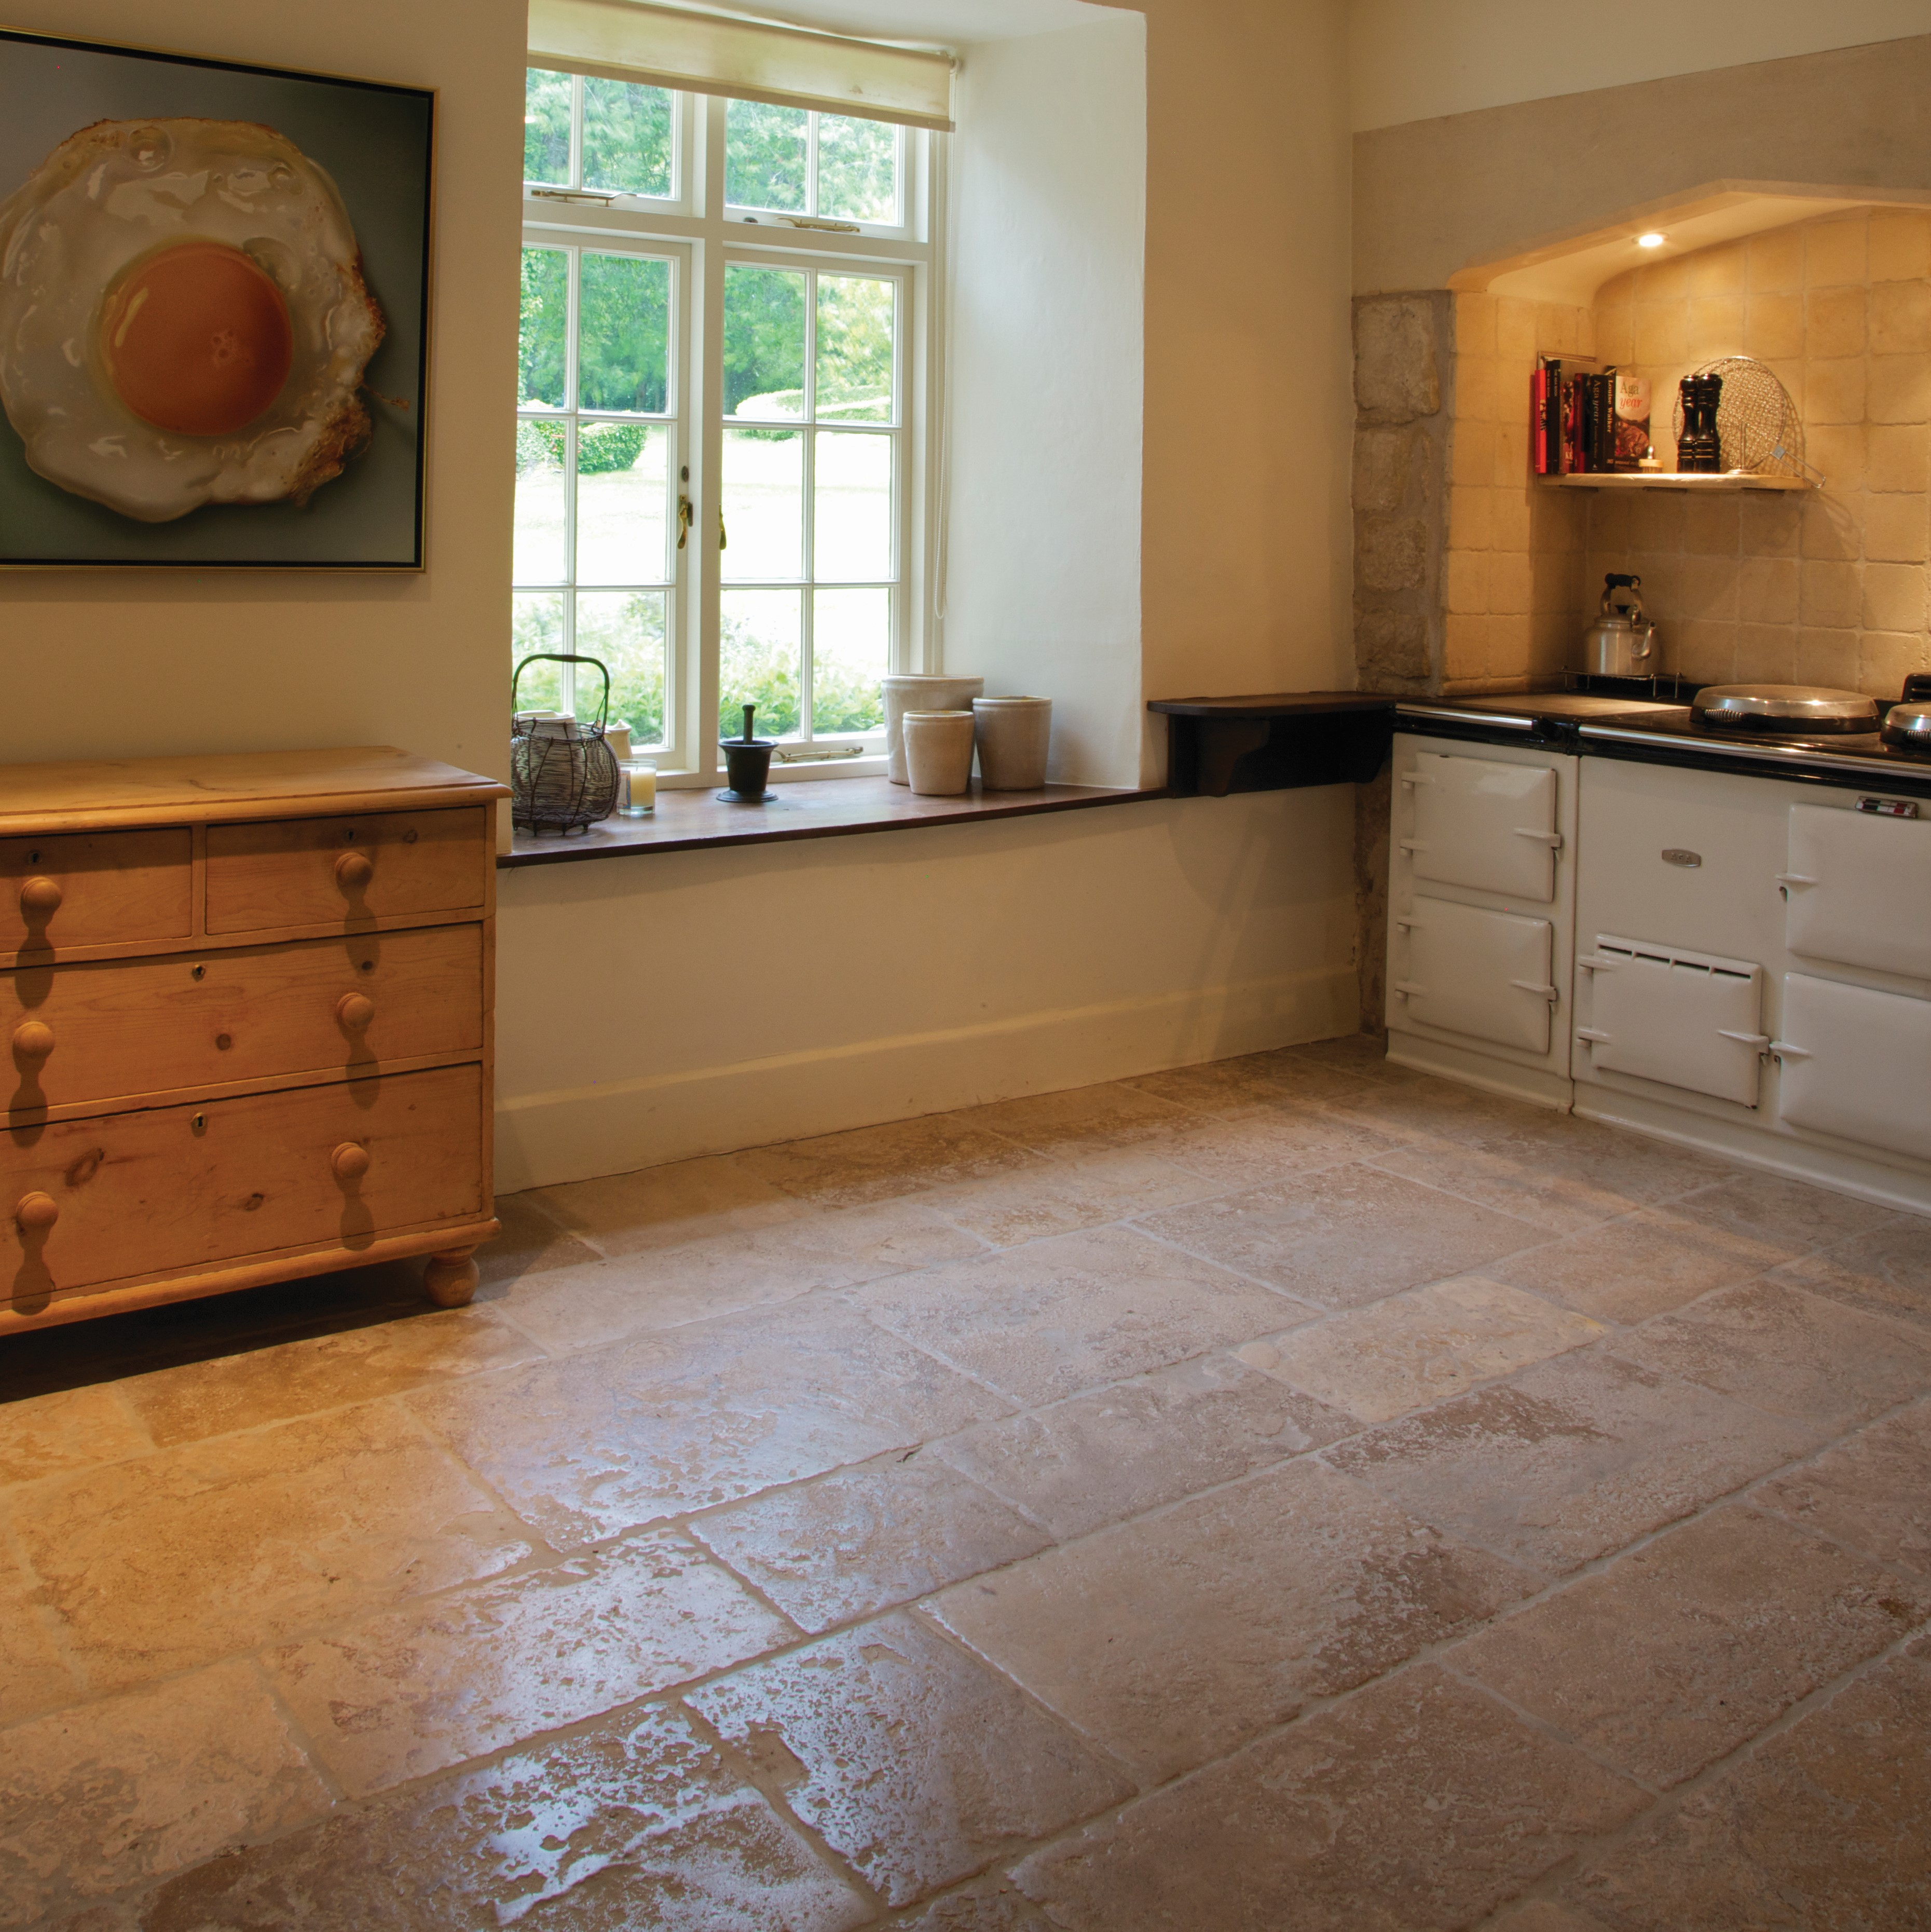 Kitchen Tiles Edinburgh: Ca' Pietra Limestone, Medieval Bourgogne (weathered)